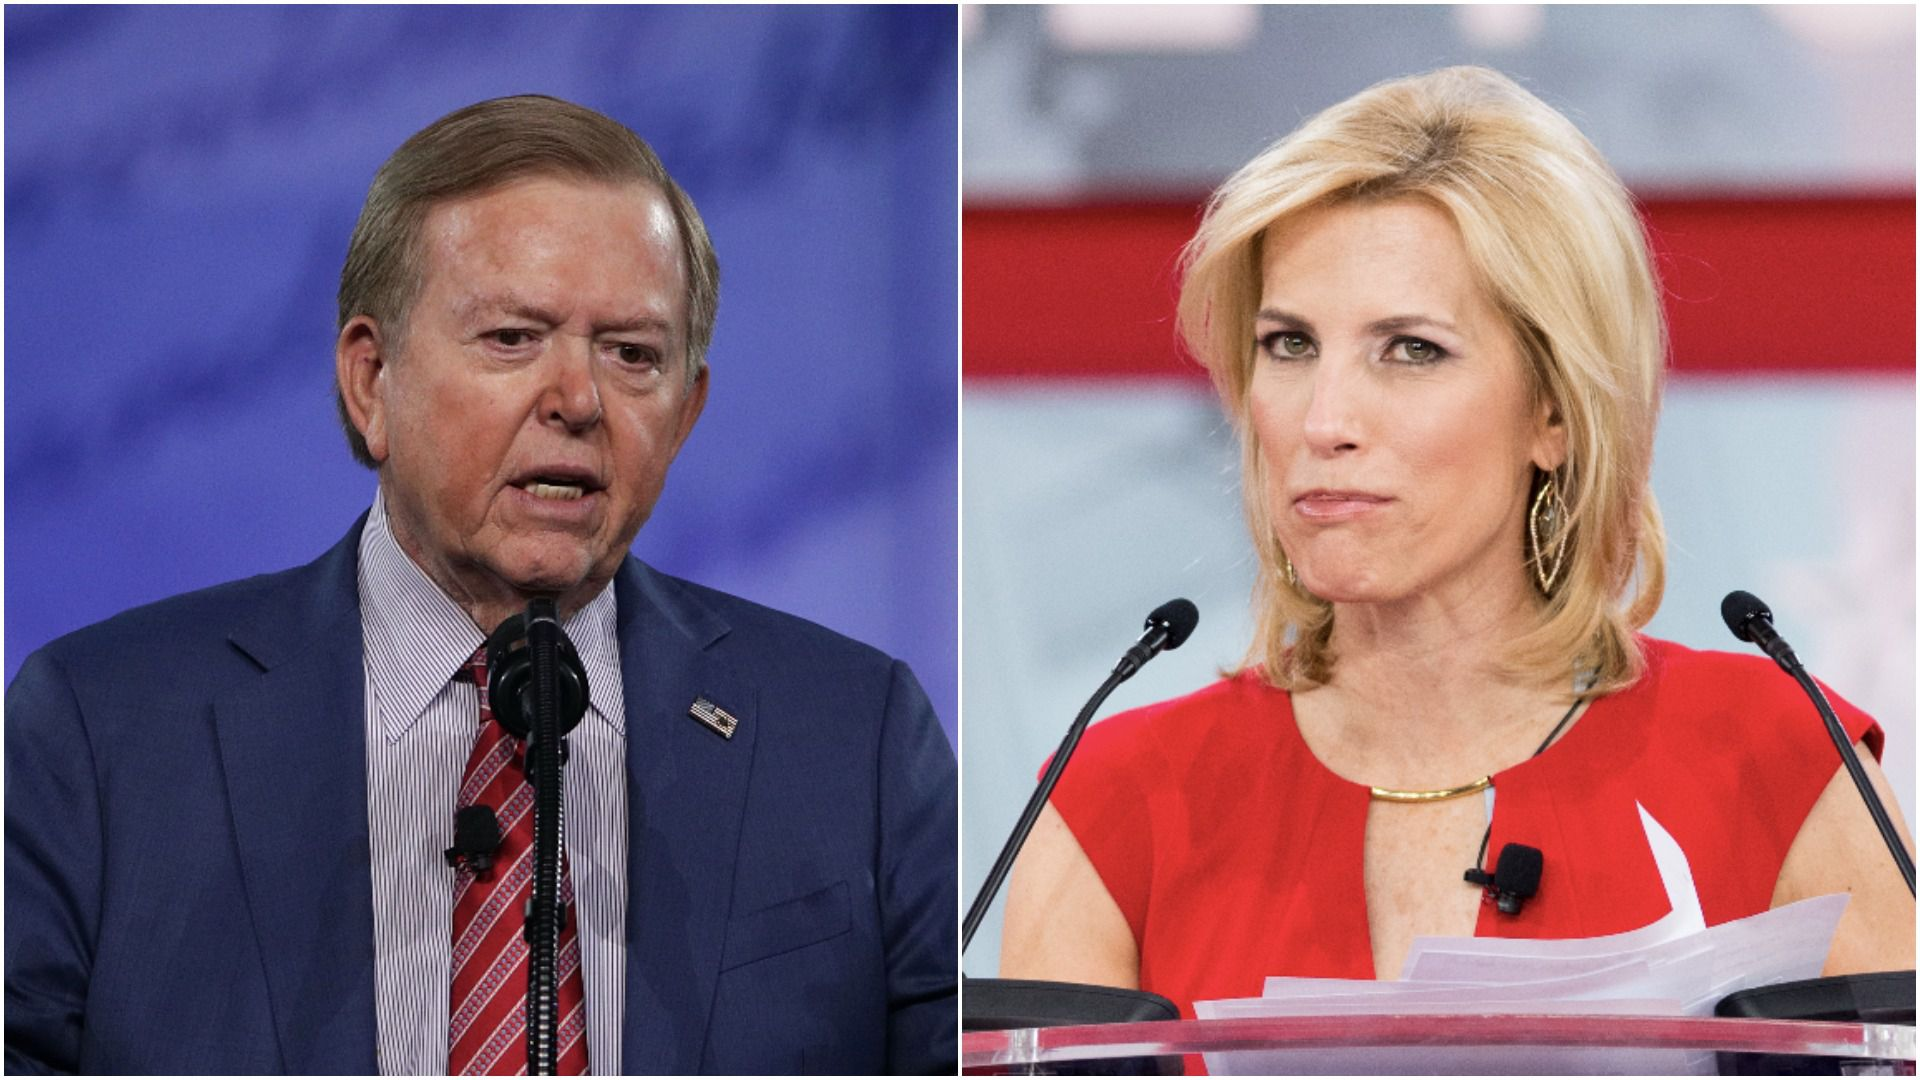 Dobbs and Ingraham